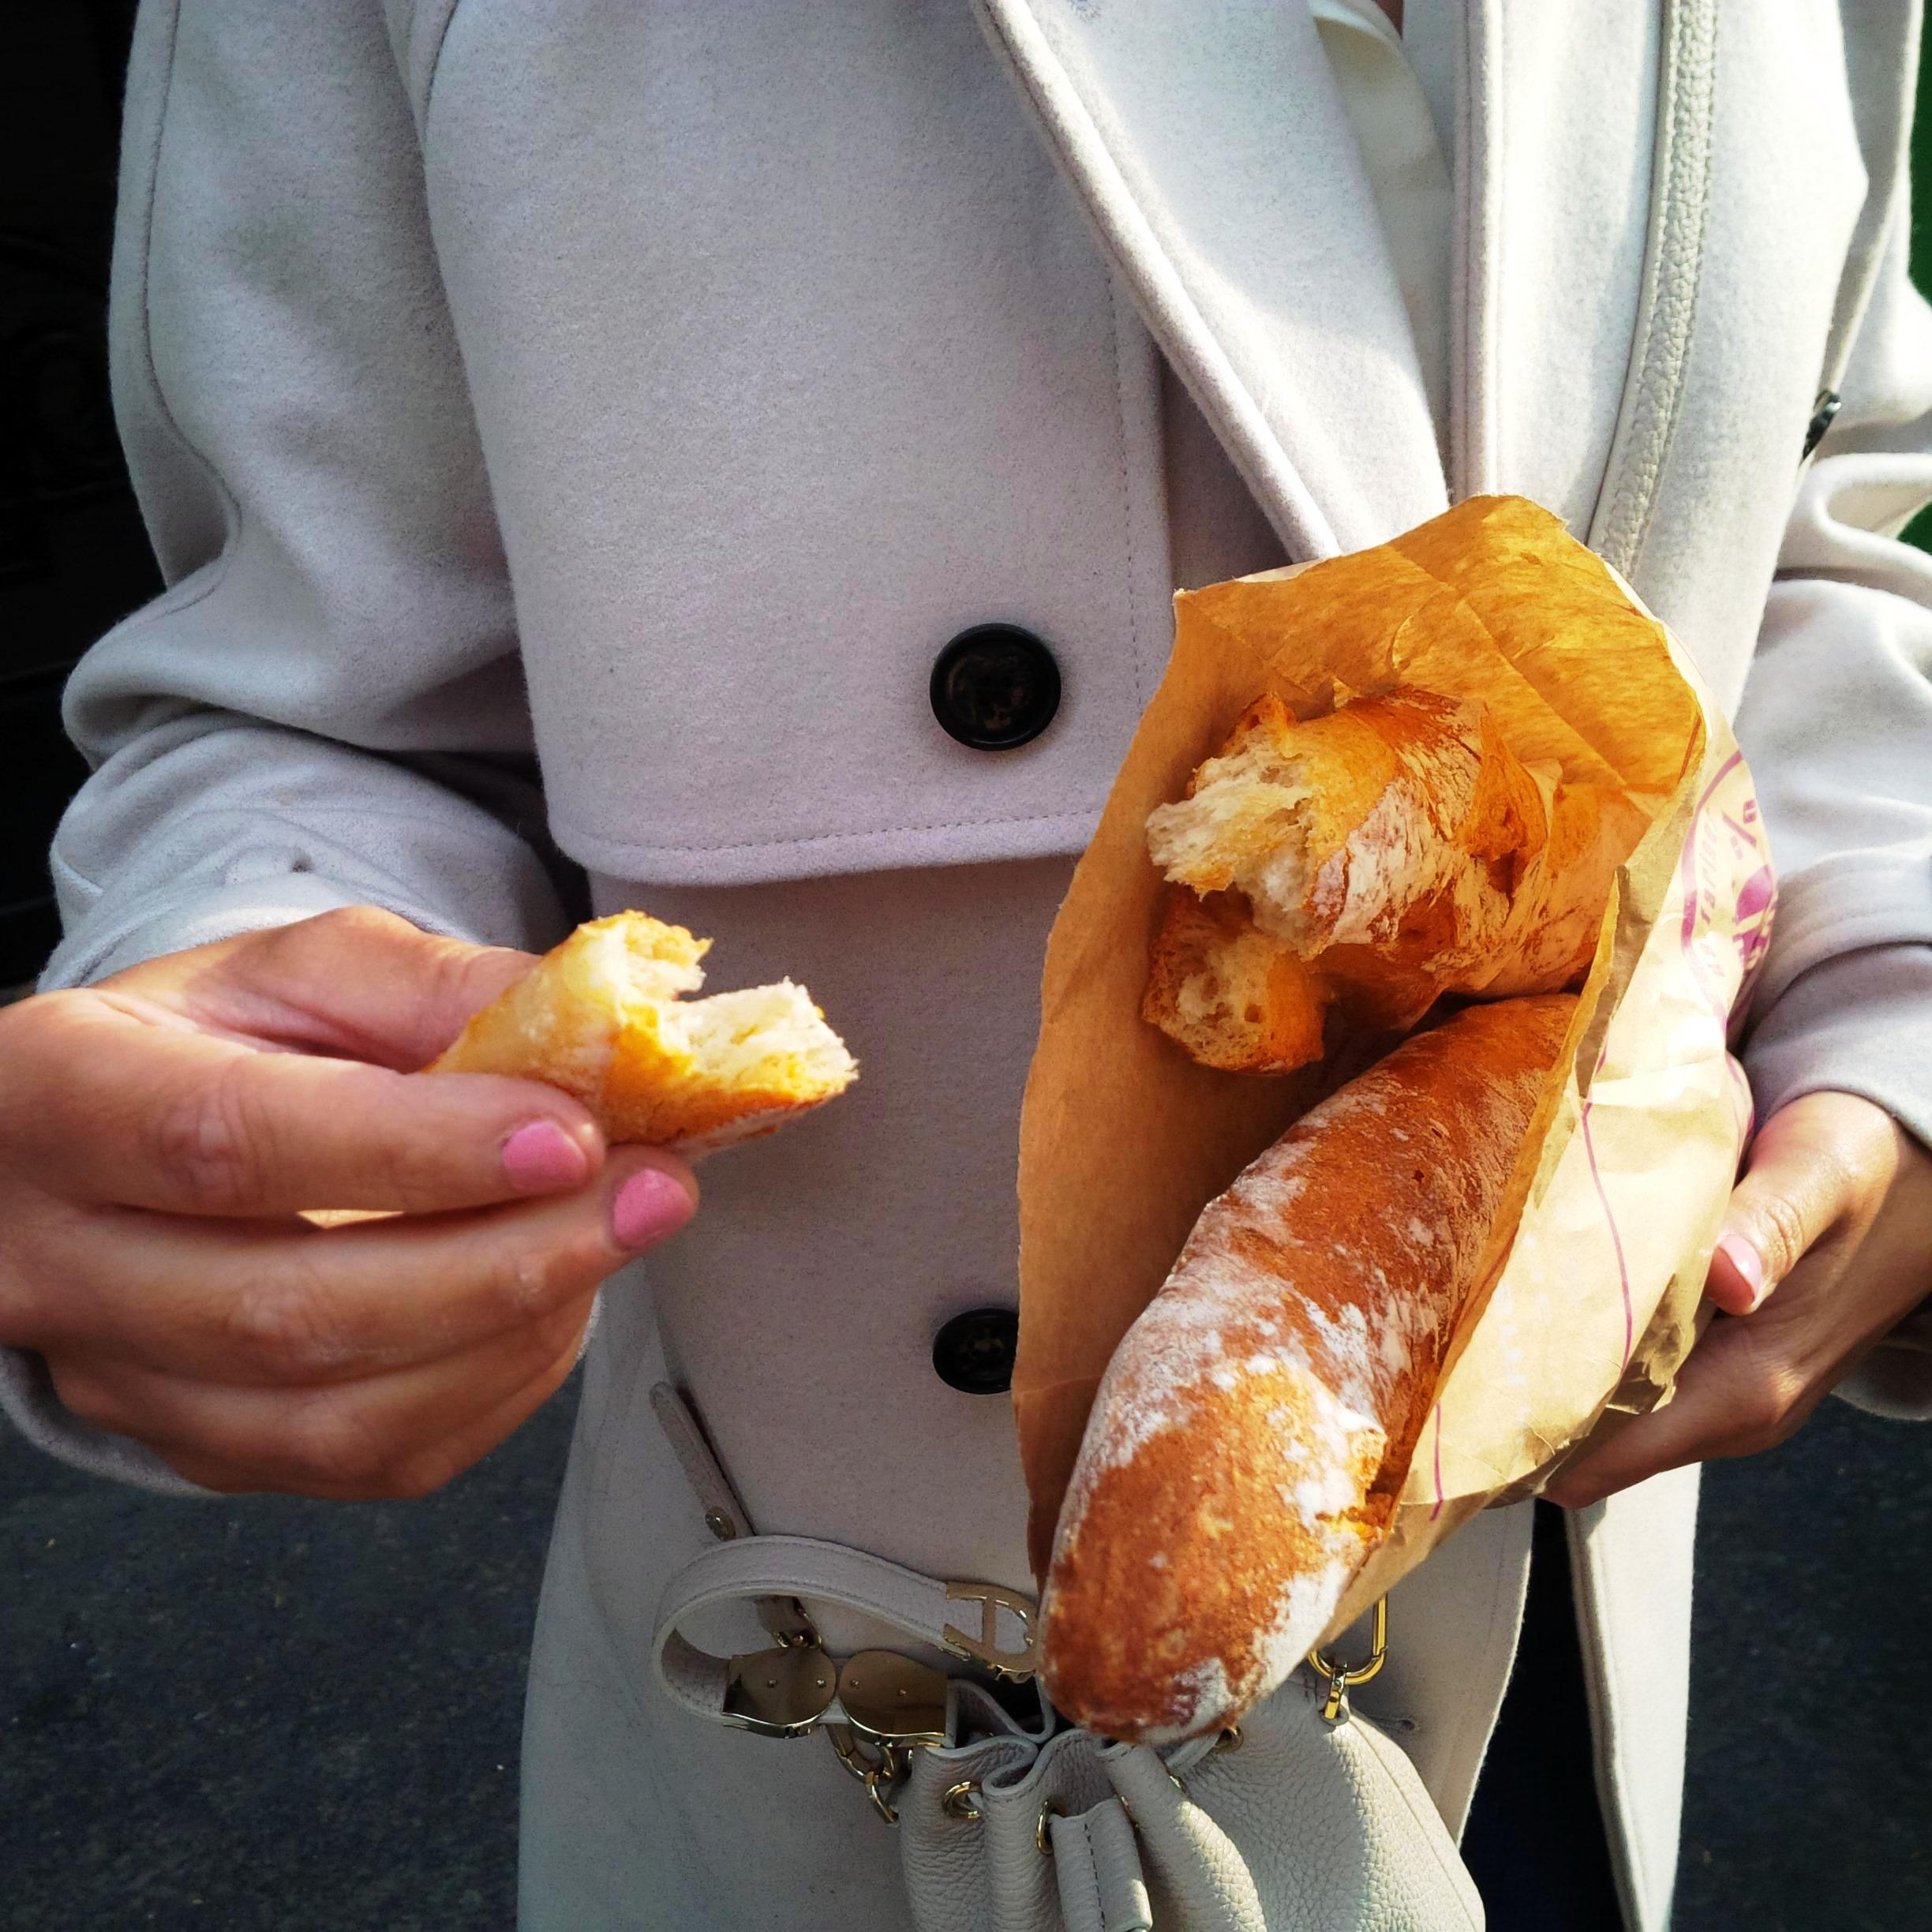 Follow Me Around - How to Make the Most of 48 Hours in Paris. Insider Tipps. Boulangerie Baguette. Eatery